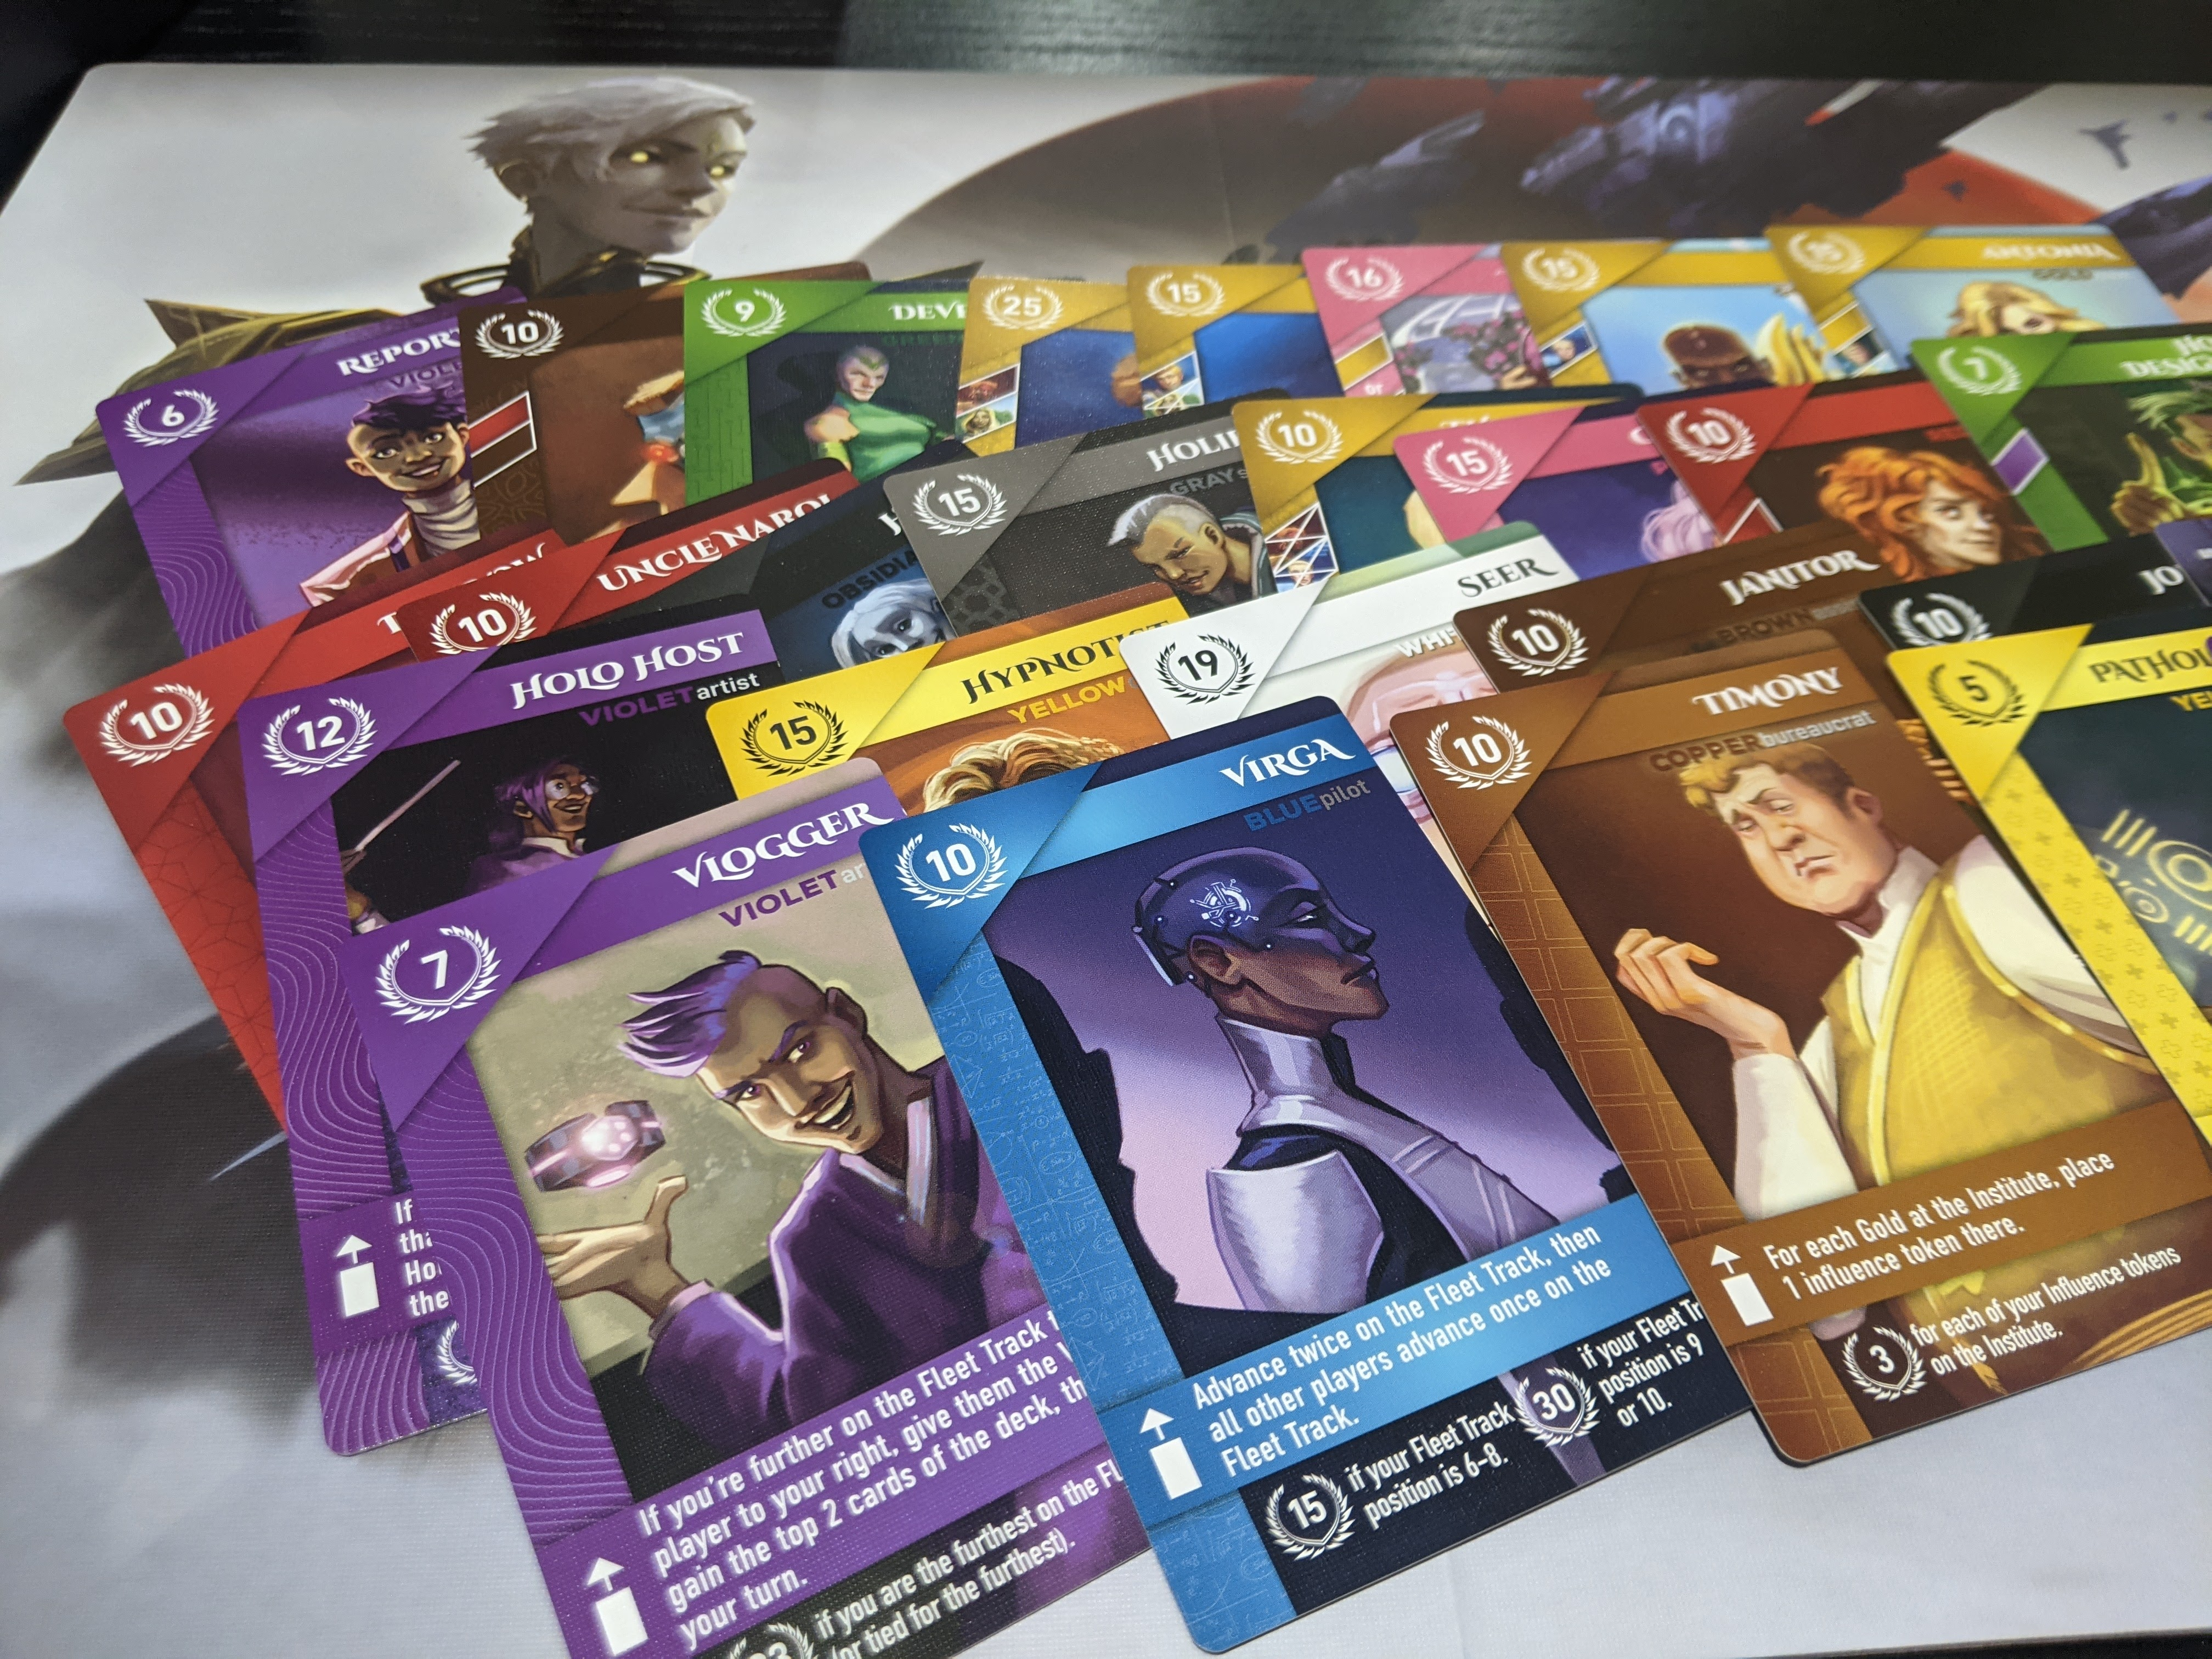 Cards from Red Rising are spread out showing the different pictures on the cards.